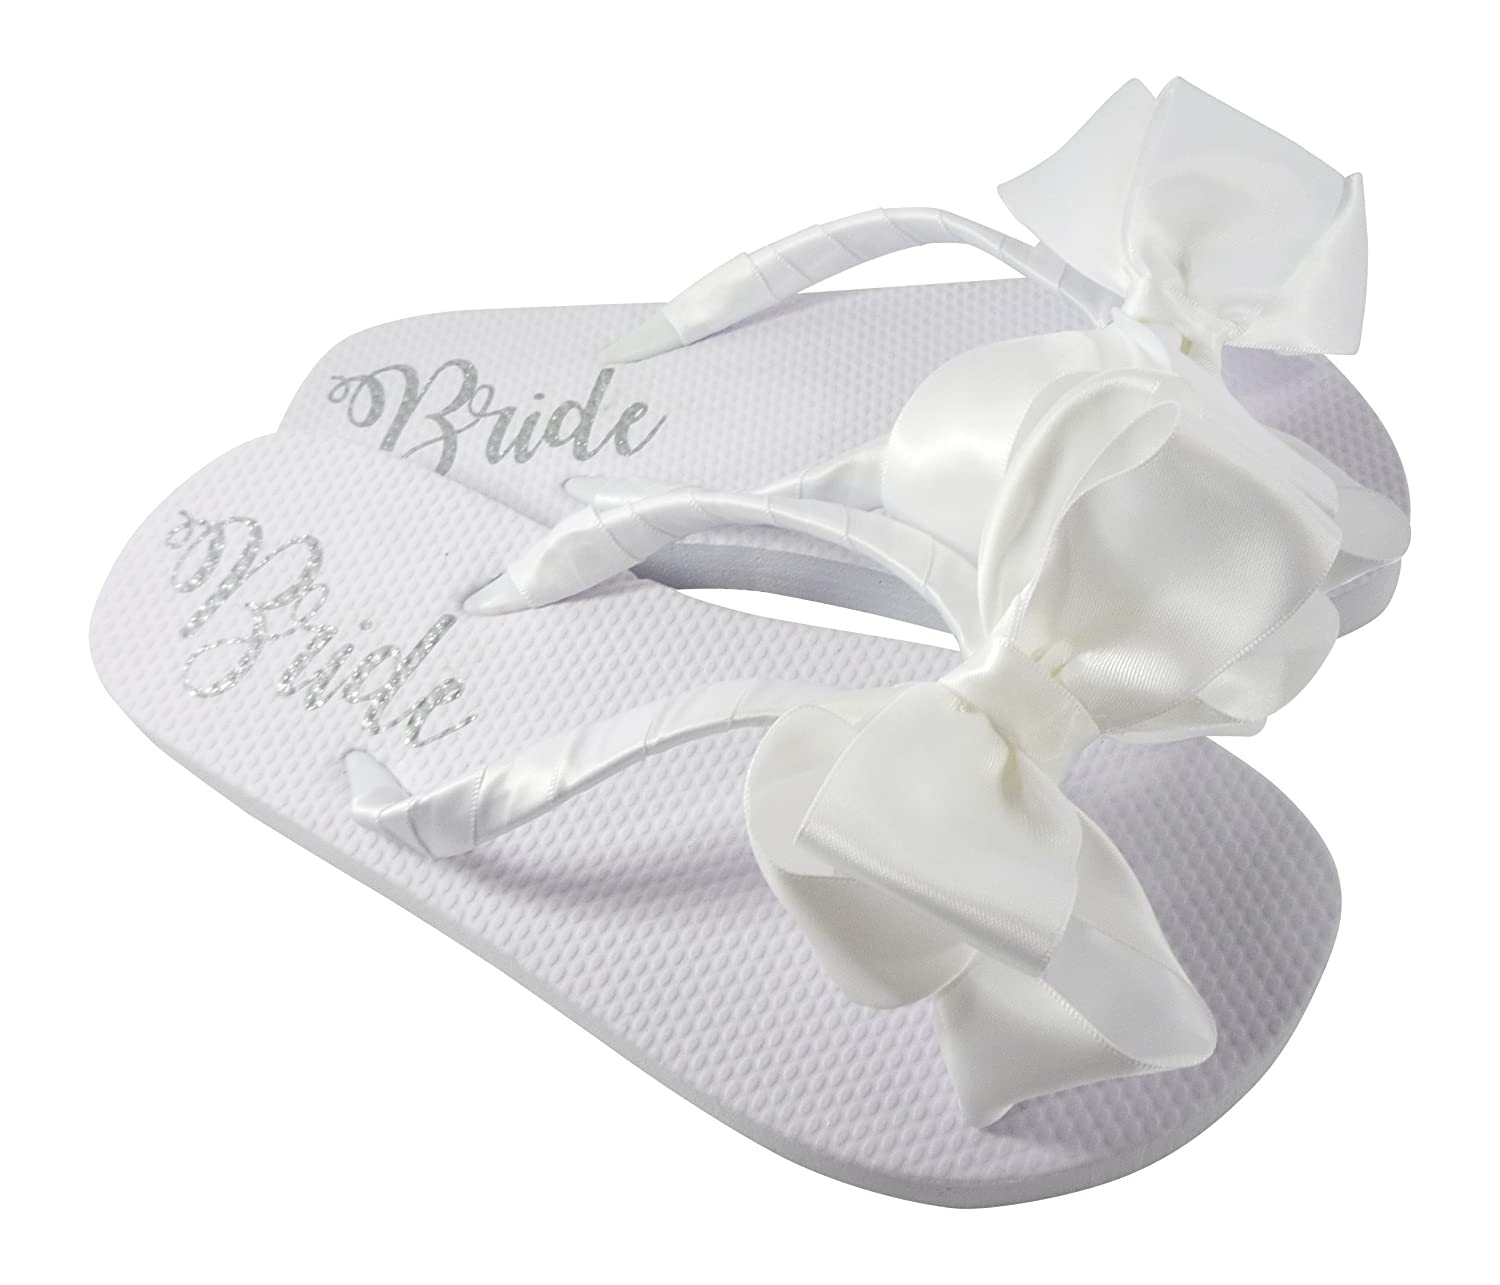 Wedding Bow Flip Flops with Shimmer Bride on the Flat Sole